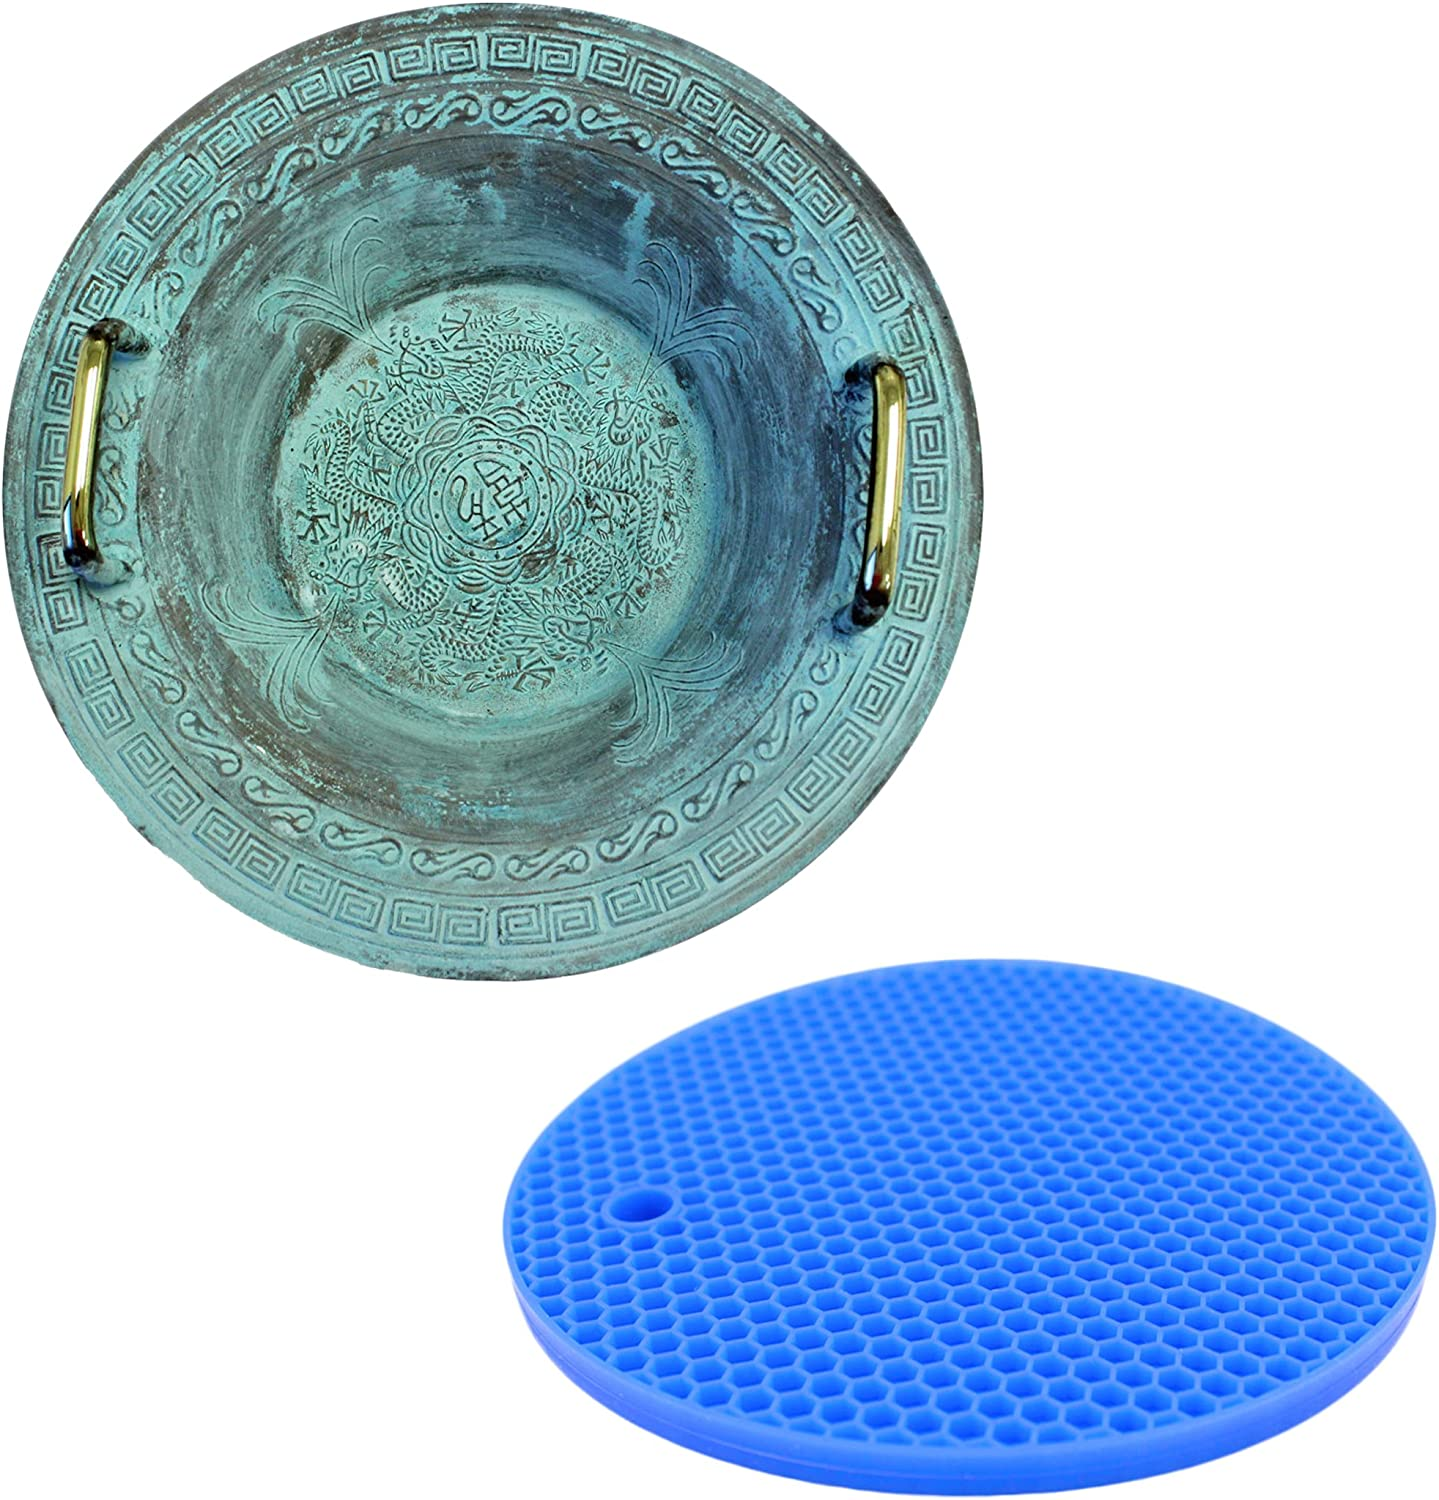 Resonance Chinese Spouting Bowl Plus Rubber Mat Danci 1 year warranty a Ranking integrated 1st place Create